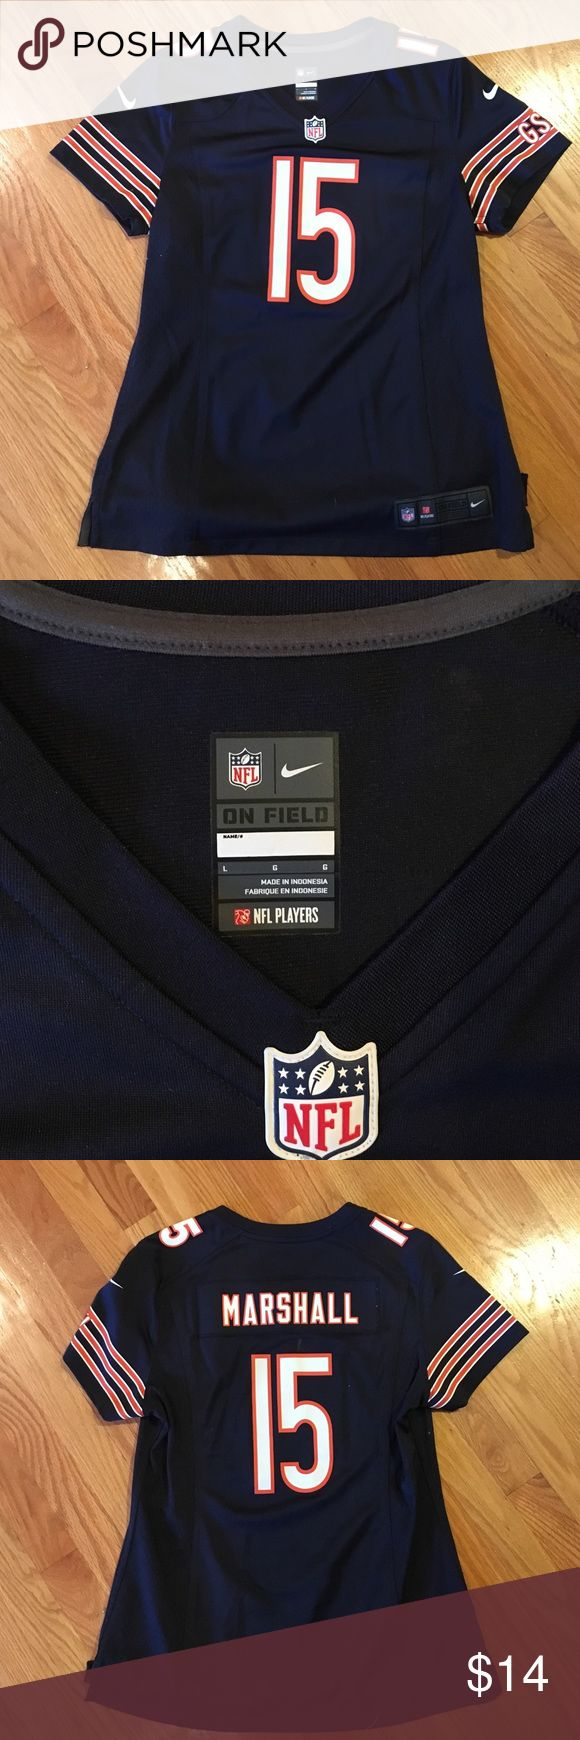 Nike- Chicago Bears- women's football jersey- L Women's football jersey- Chicago Bears- Nike- size L- Marshall #15- like new- great quality- jersey material- 100/poly- from smoke free home Nike Tops Tees - Short Sleeve